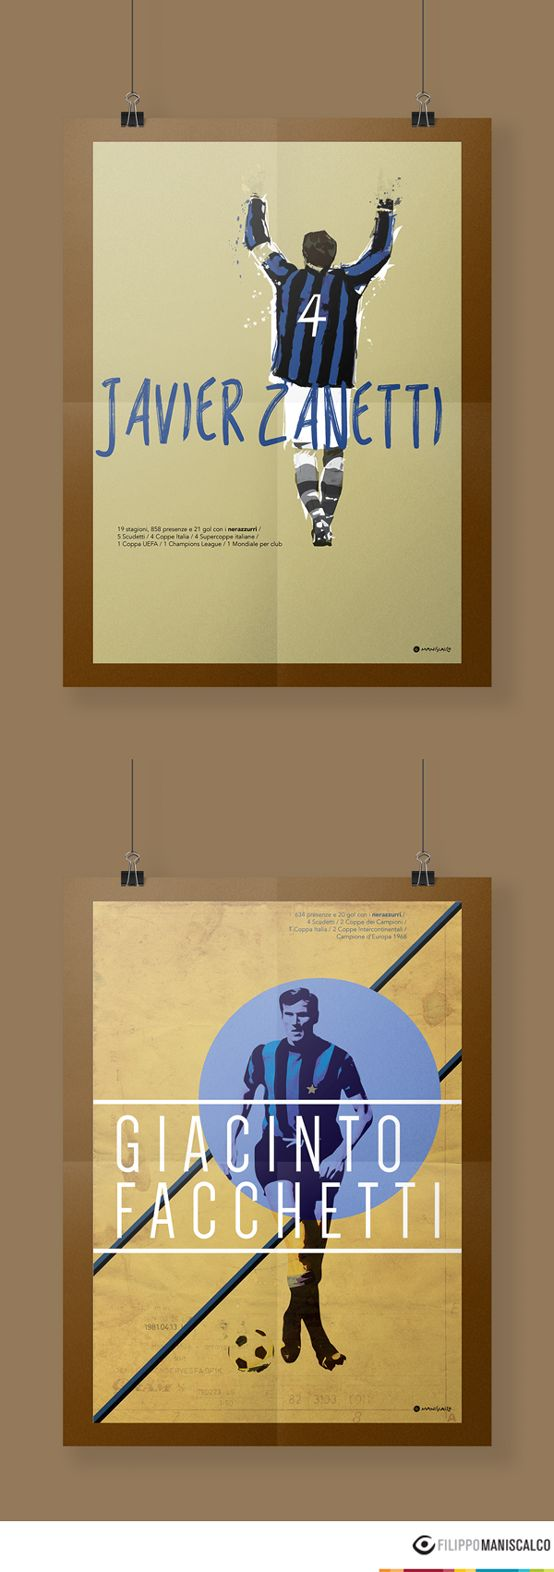 Collection of nine players on the illustrations of the 'Series A, the most beautiful championship in the world'. Graphic reproductions made through different styles. #SerieAPoster #Zanetti #Facchetti #FCInter   In Stock $33.28